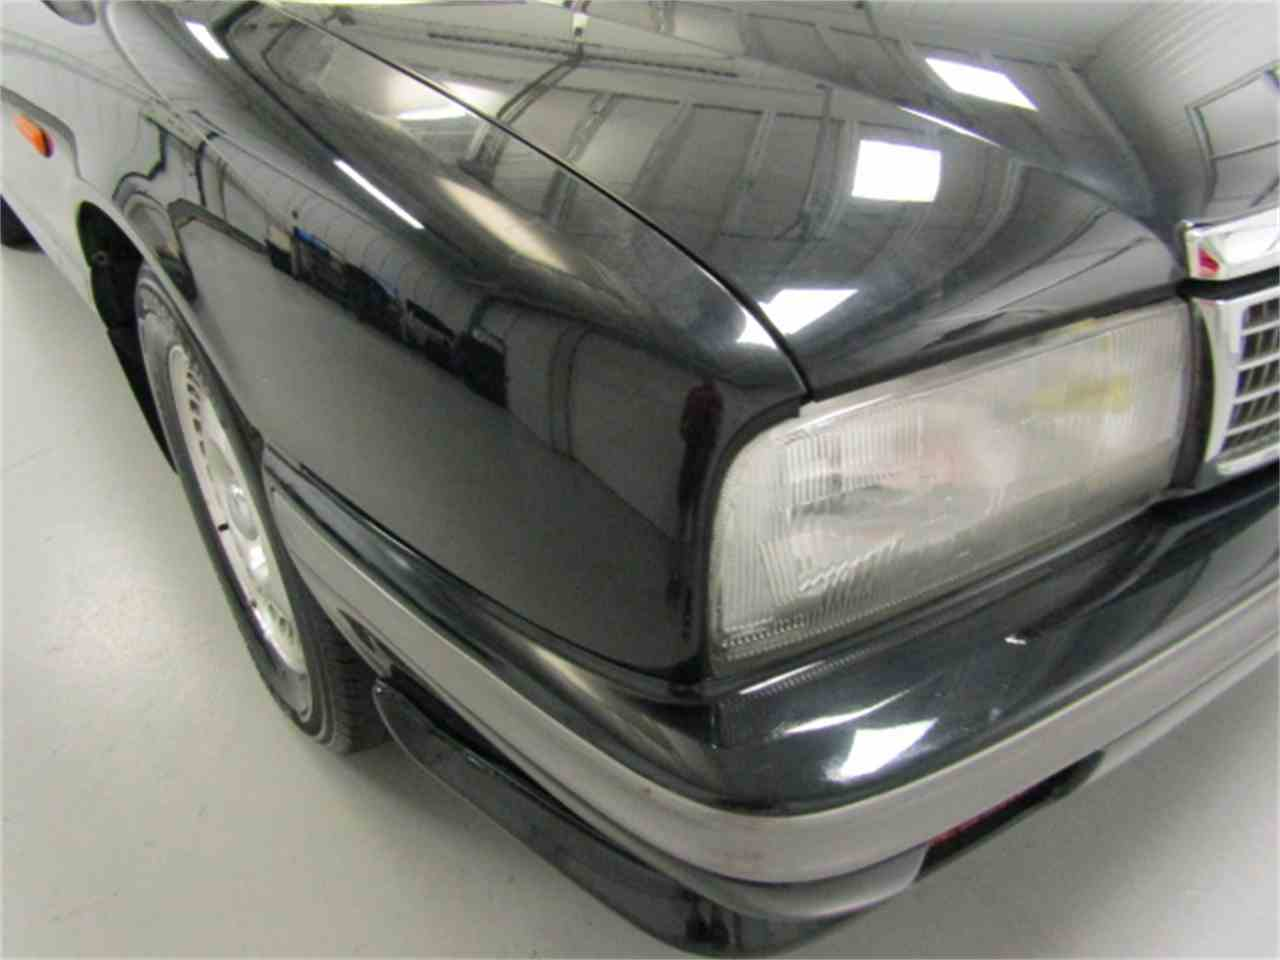 Large Picture of '90 Nissan Cima - $5,990.00 Offered by Duncan Imports & Classic Cars - JLDM